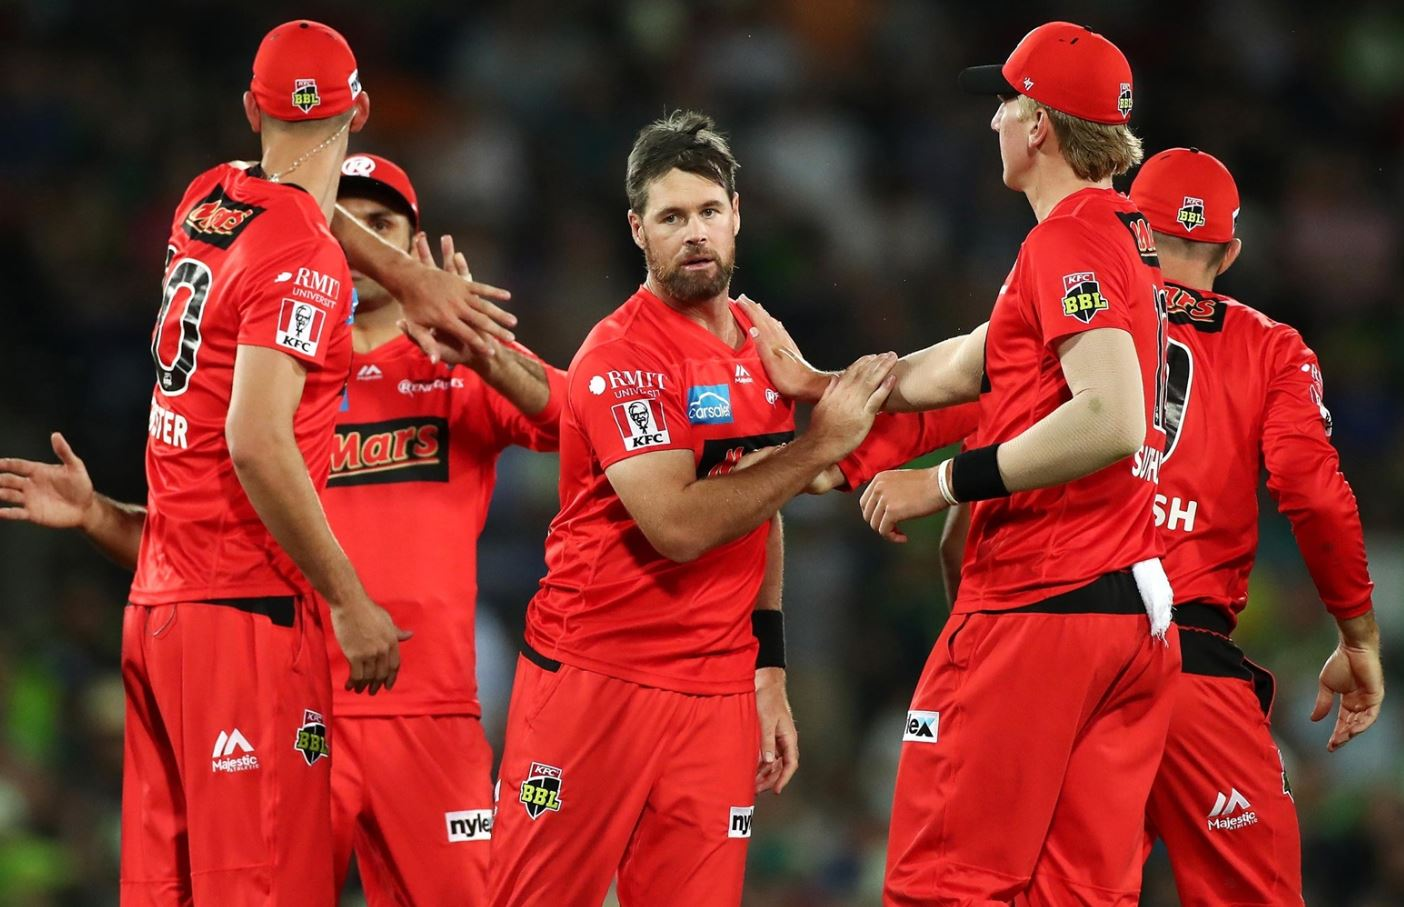 BBL09 Fantasy Tips: Renegades vs Hurricanes